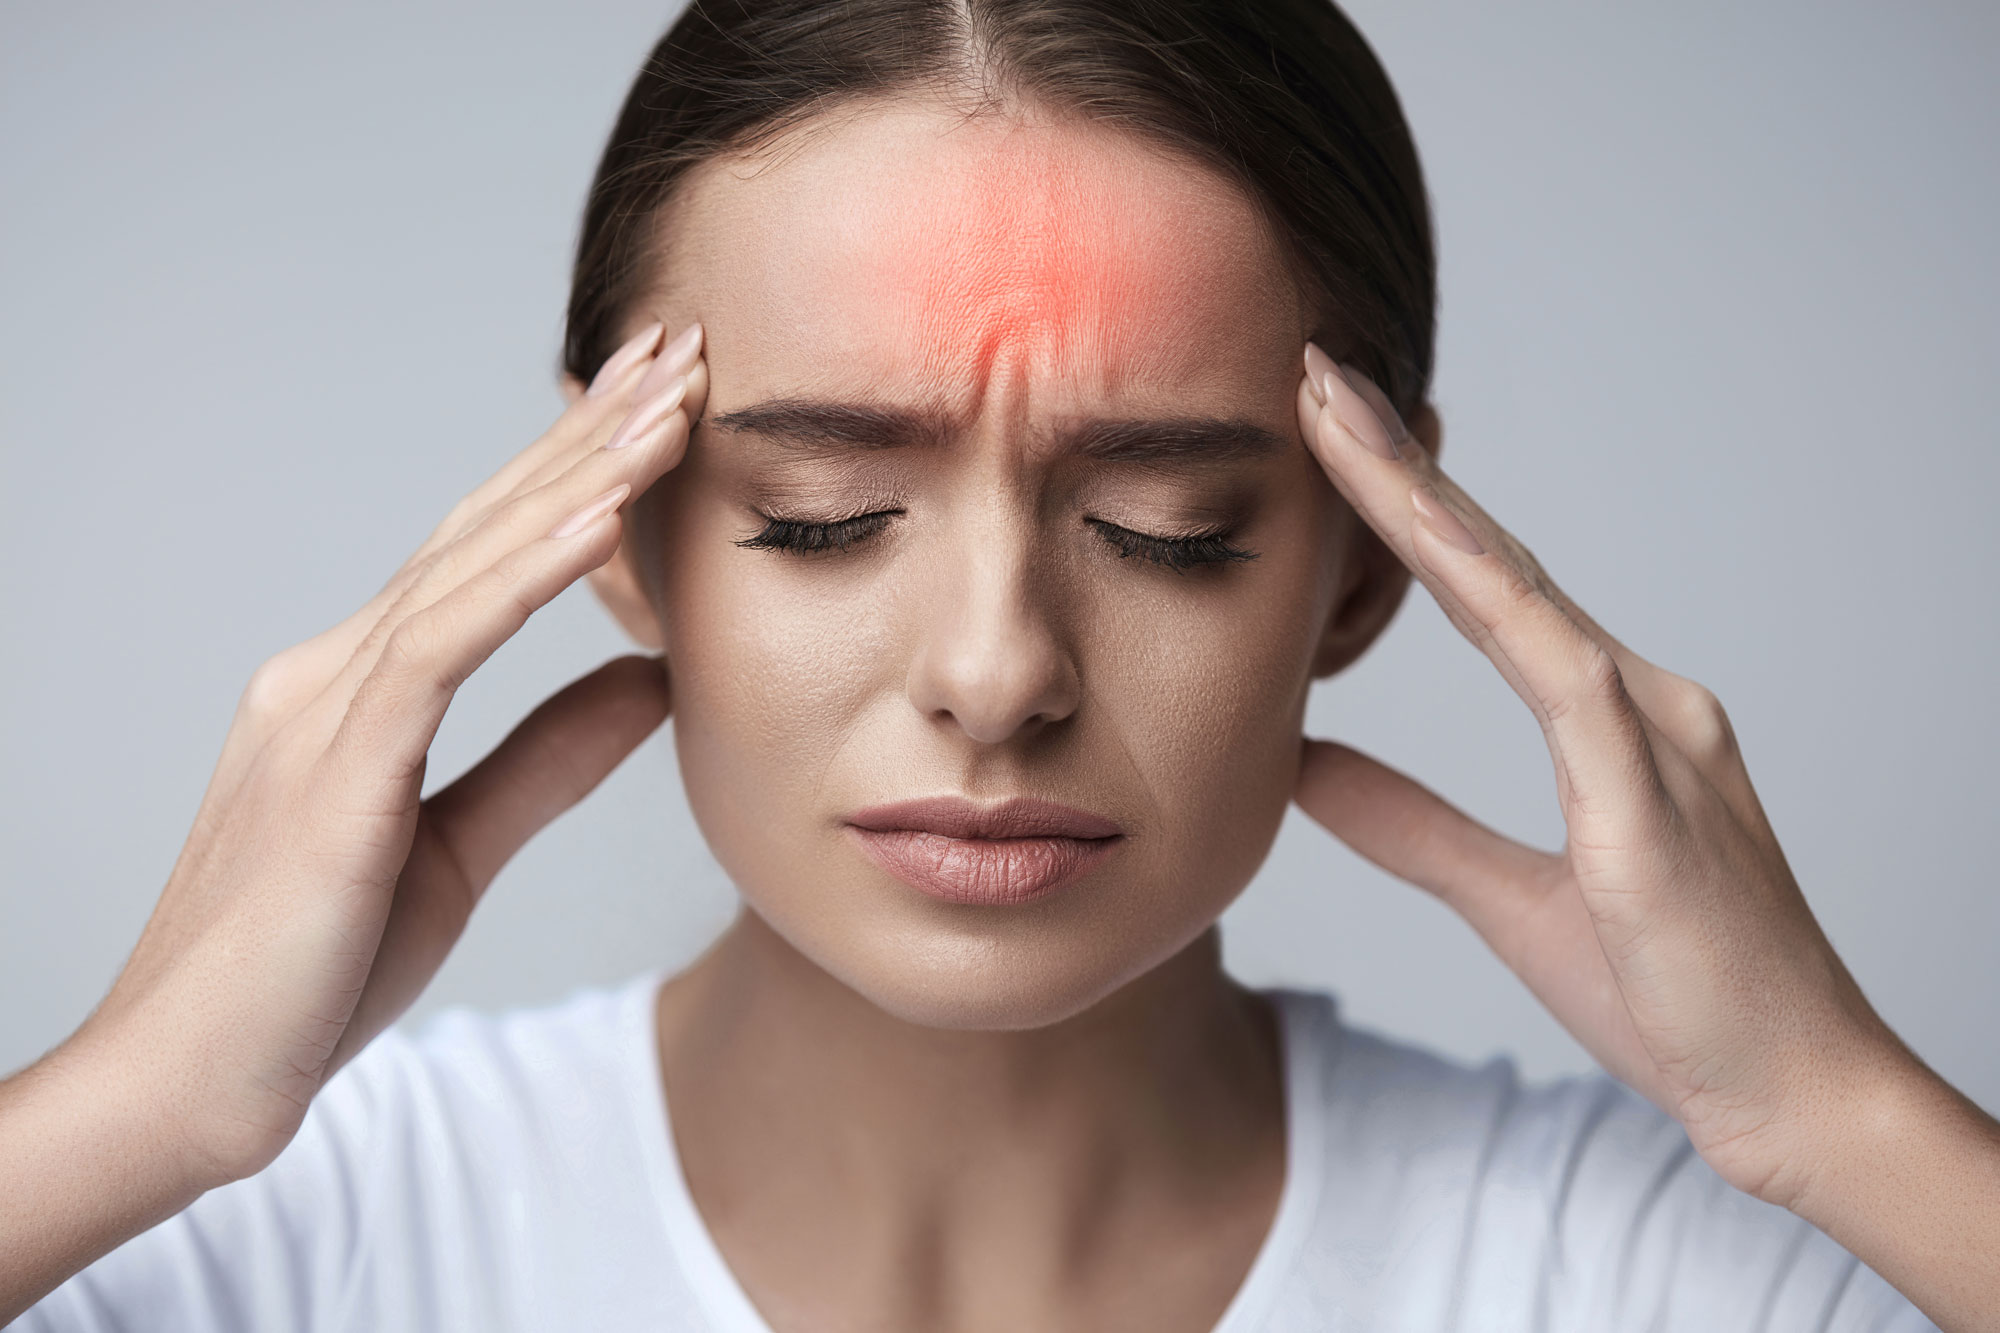 migraineur, What Would Really Help Migraineurs?